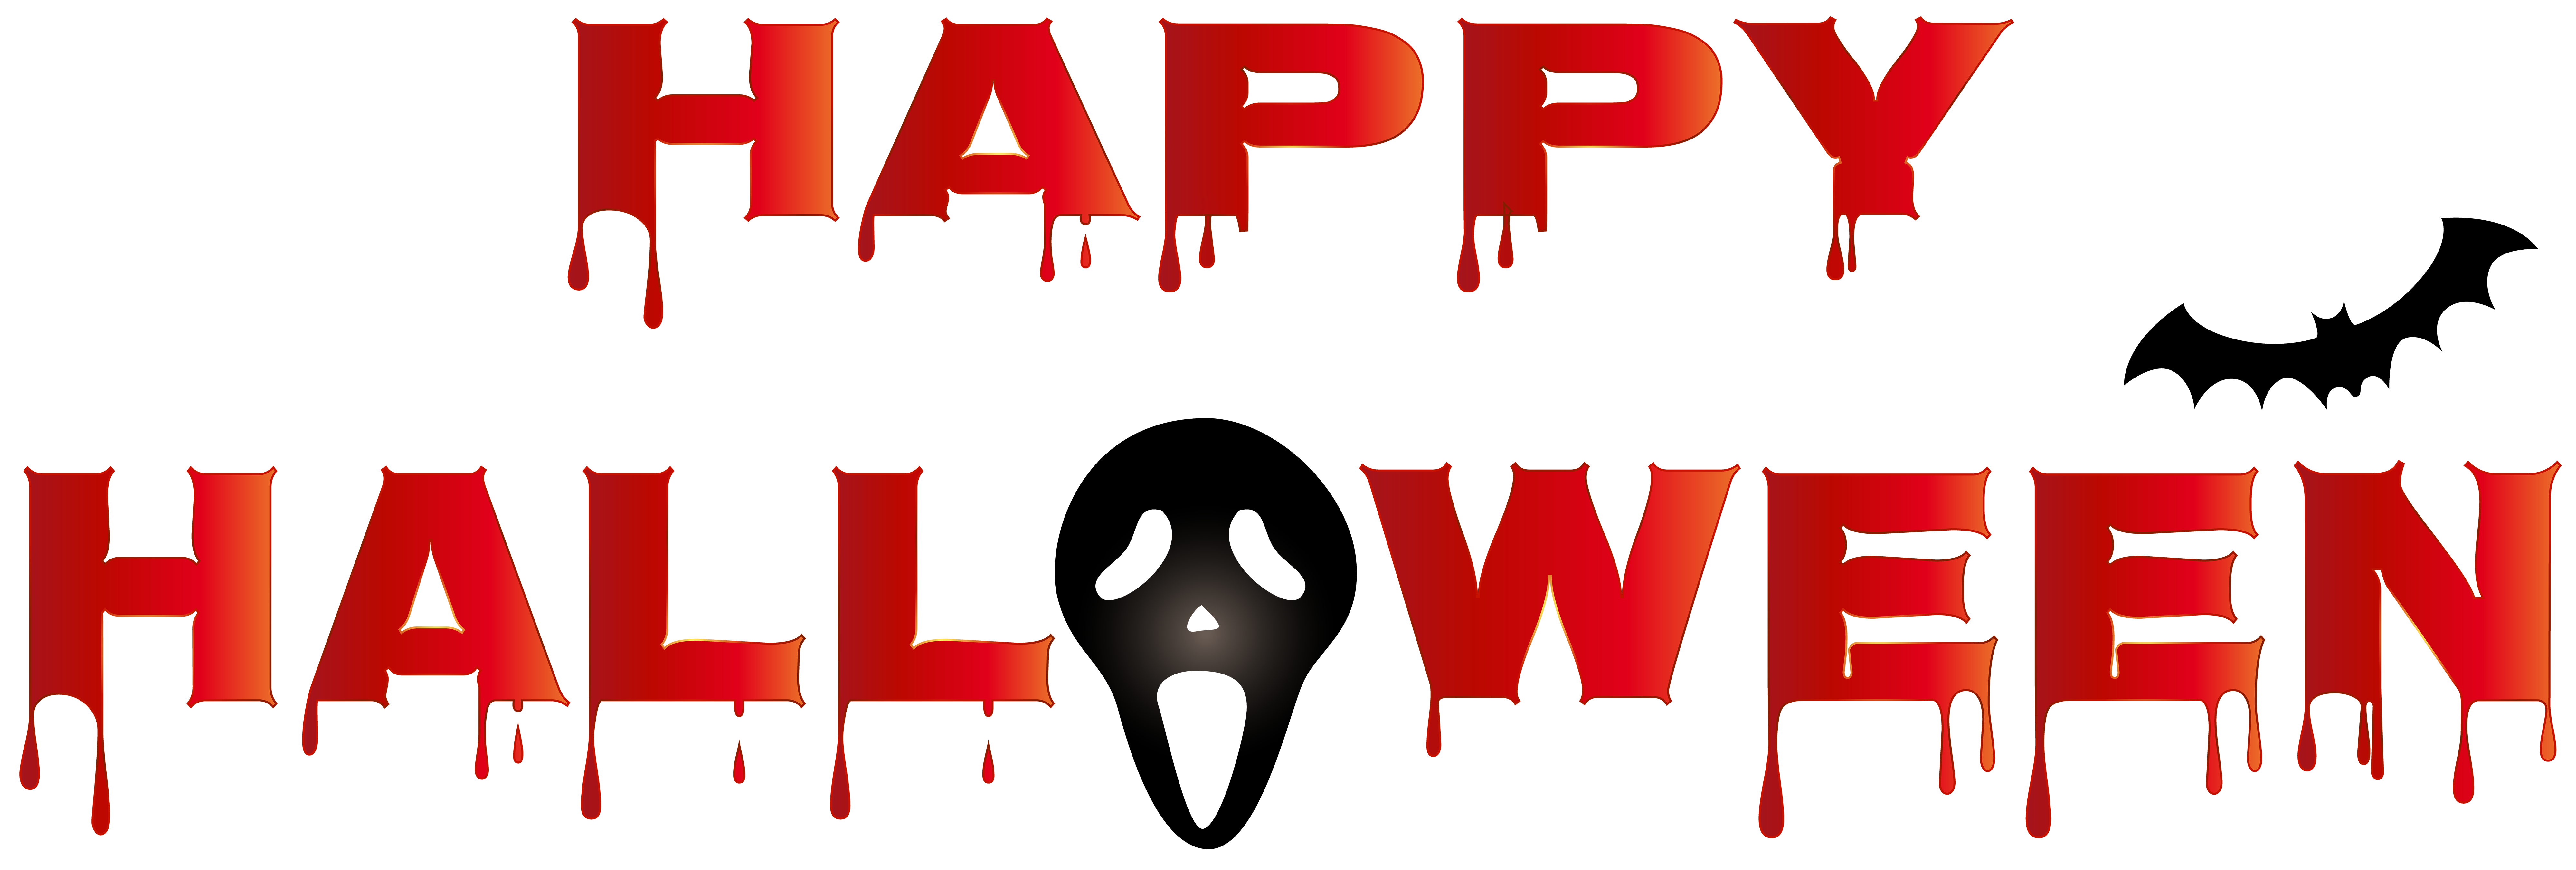 Happy halloween logo png. Bloody clip art gallery